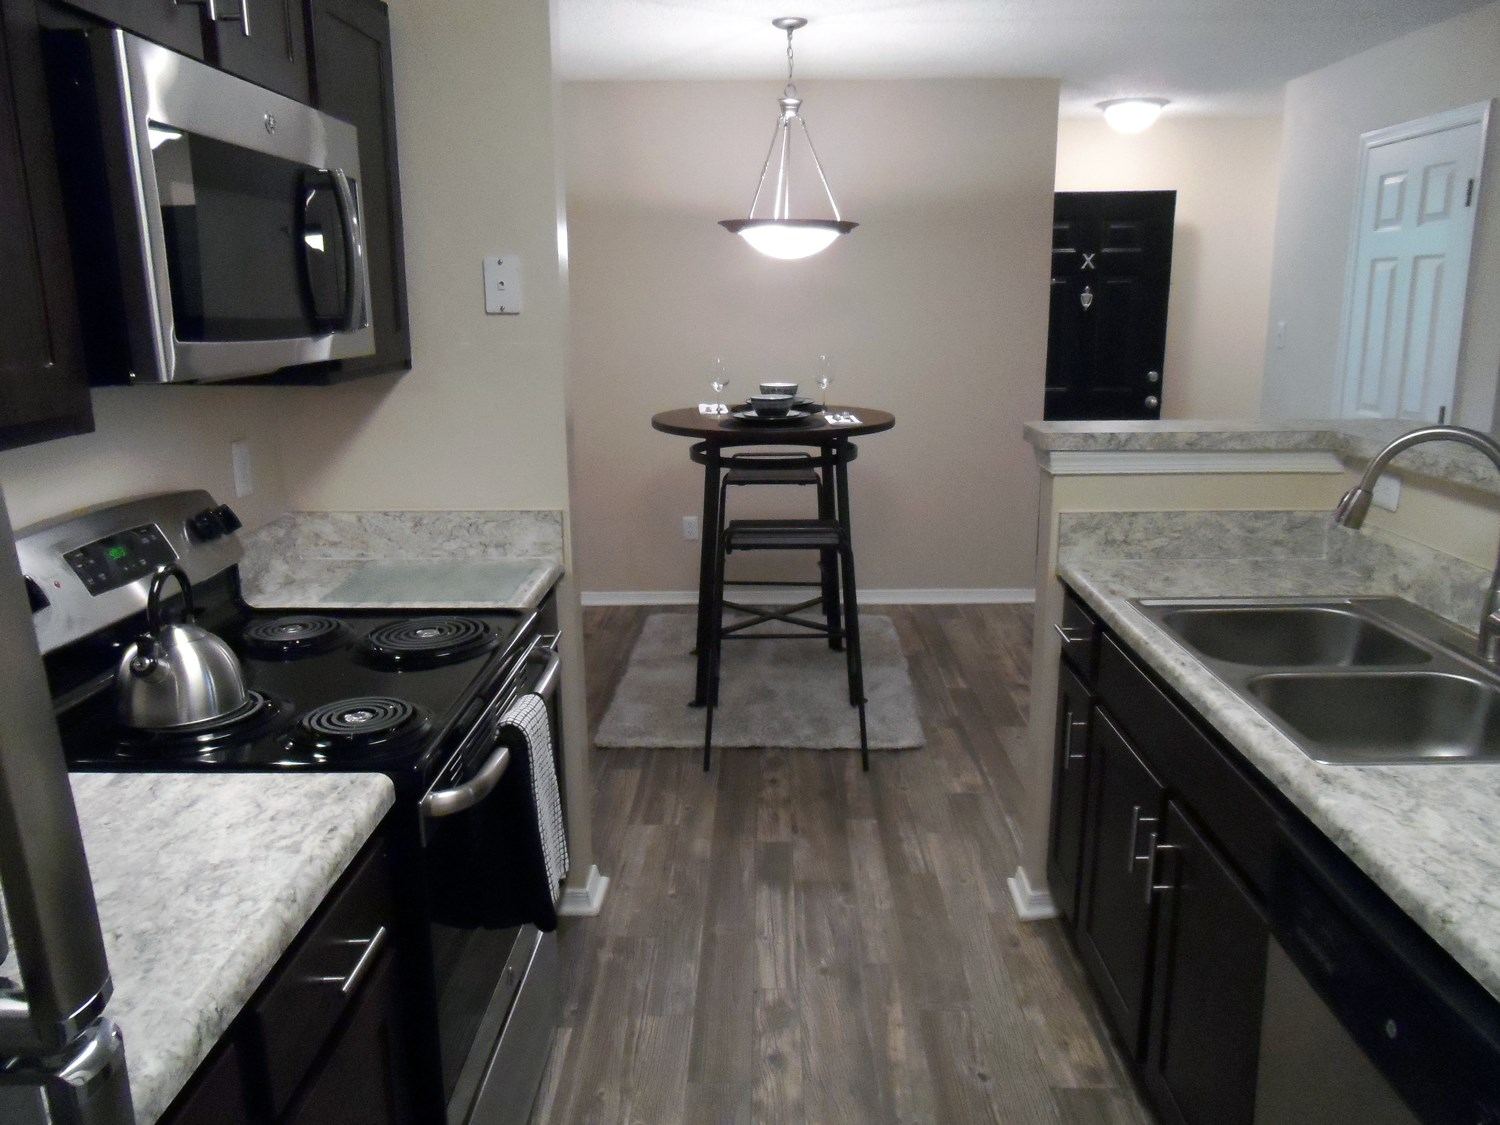 Kitchen at Amberwood at Lochmere Apartments in Cary, NC